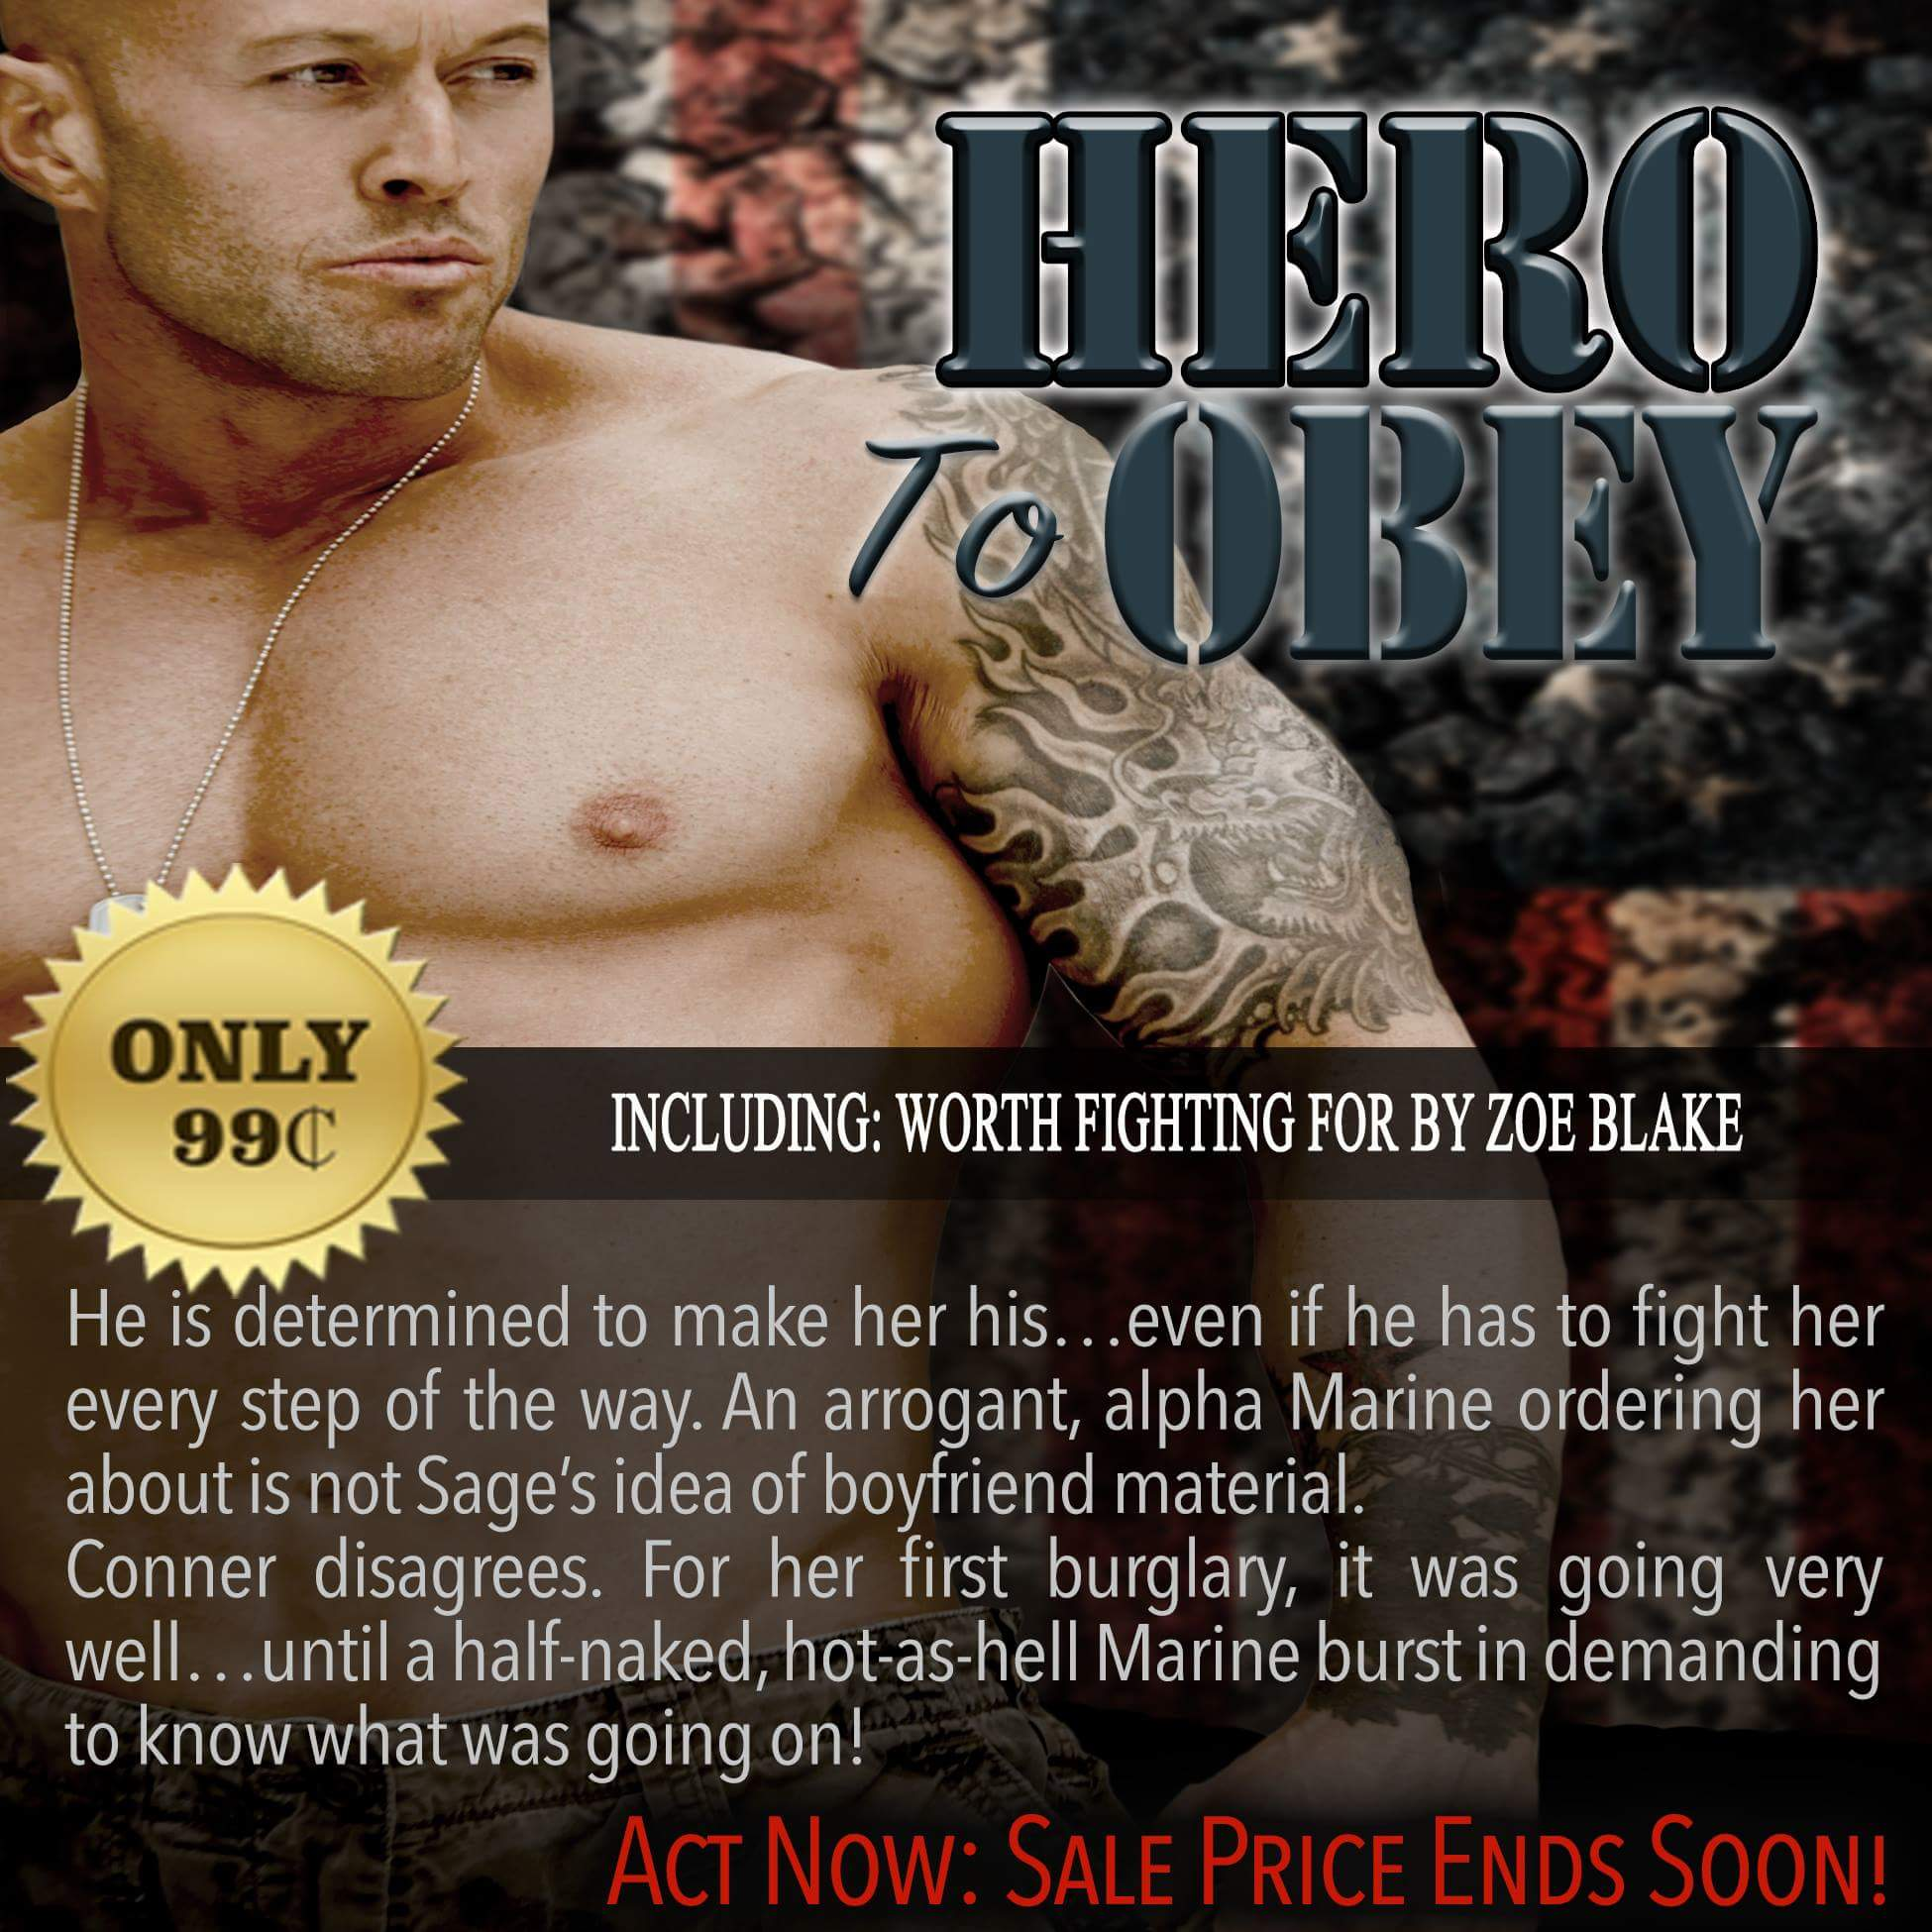 Hero To Obey Book Cover Model Actor John Joseph Quinlan by Zoe Blake. #JohnQuinlan #Hero2obey